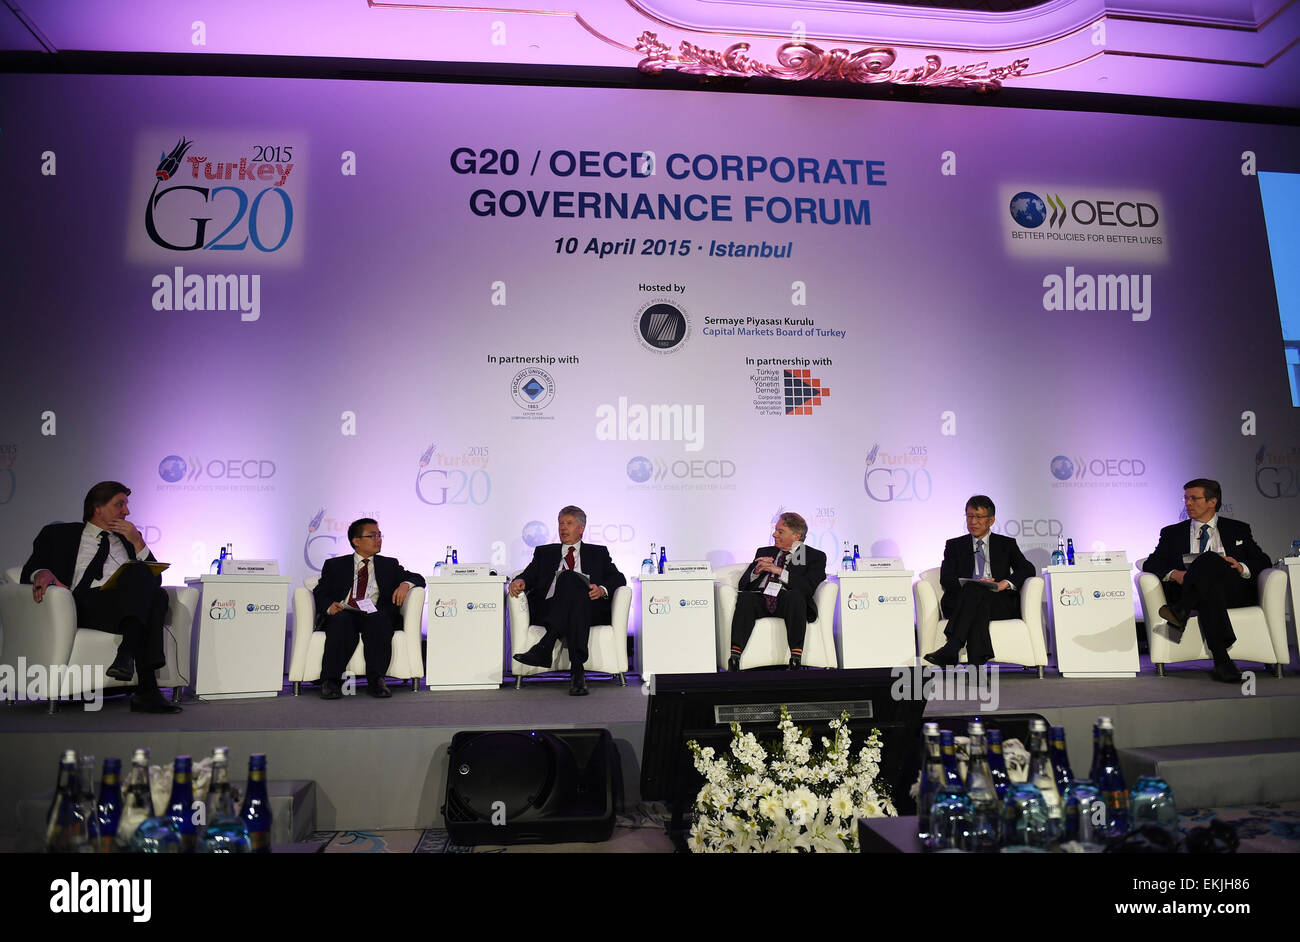 (150410) -- ISTANBUL, April 10, 2015(Xinhua) -- Delegates attend the G20/OECD Corporate Governance Forum in Istanbul, - Stock Image